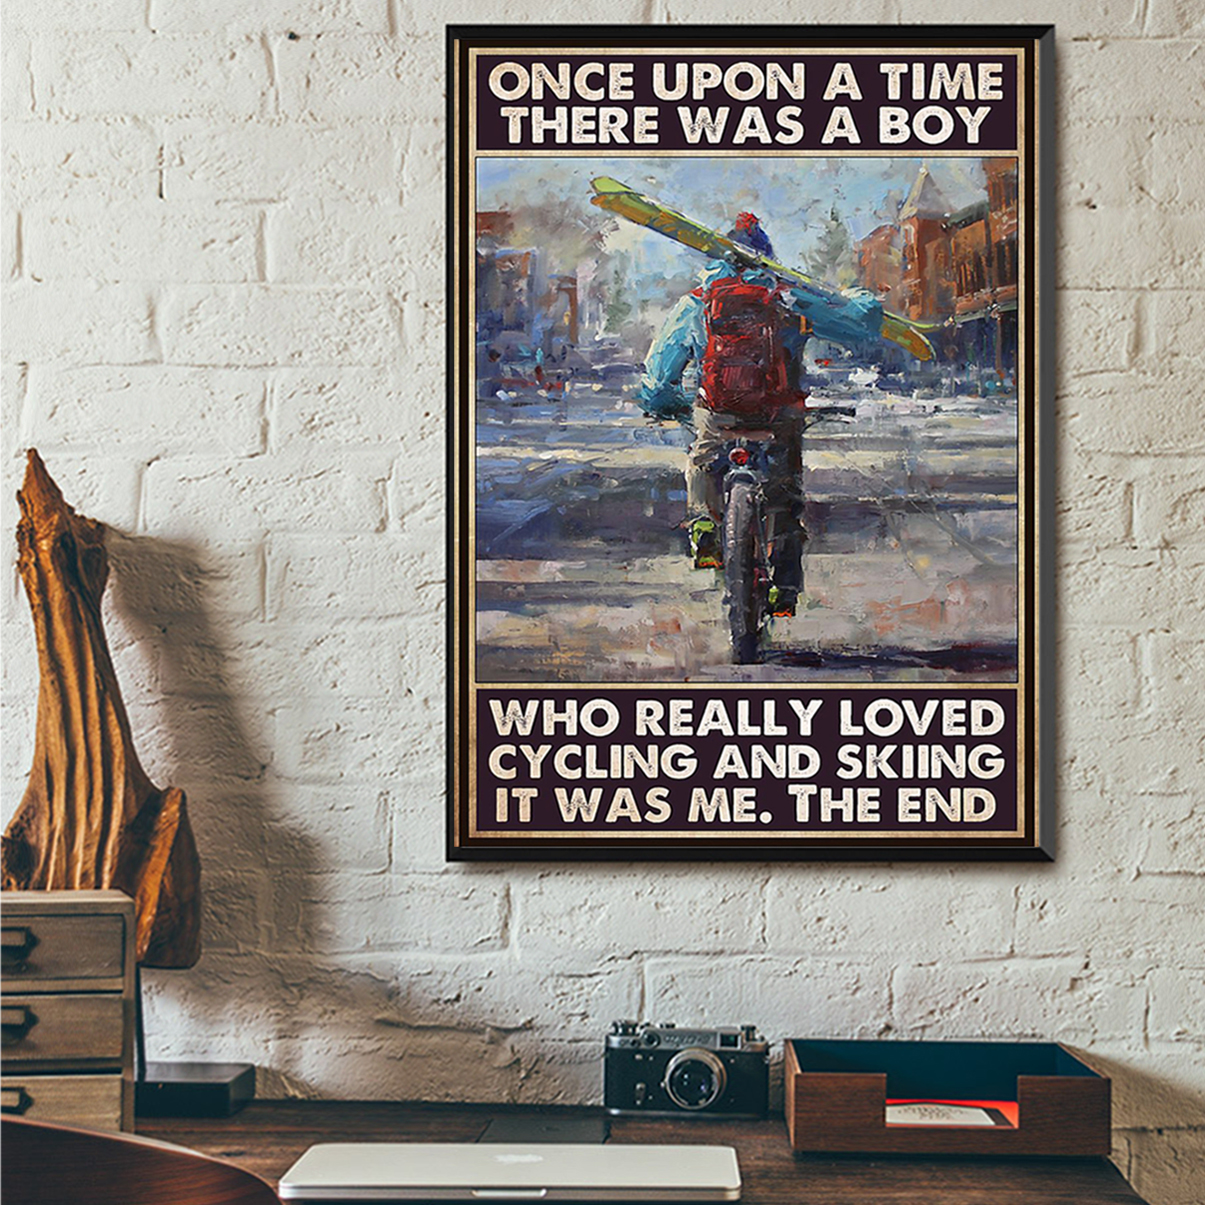 Once upon a time there was a boy who really loved cycling and skiing poster A1